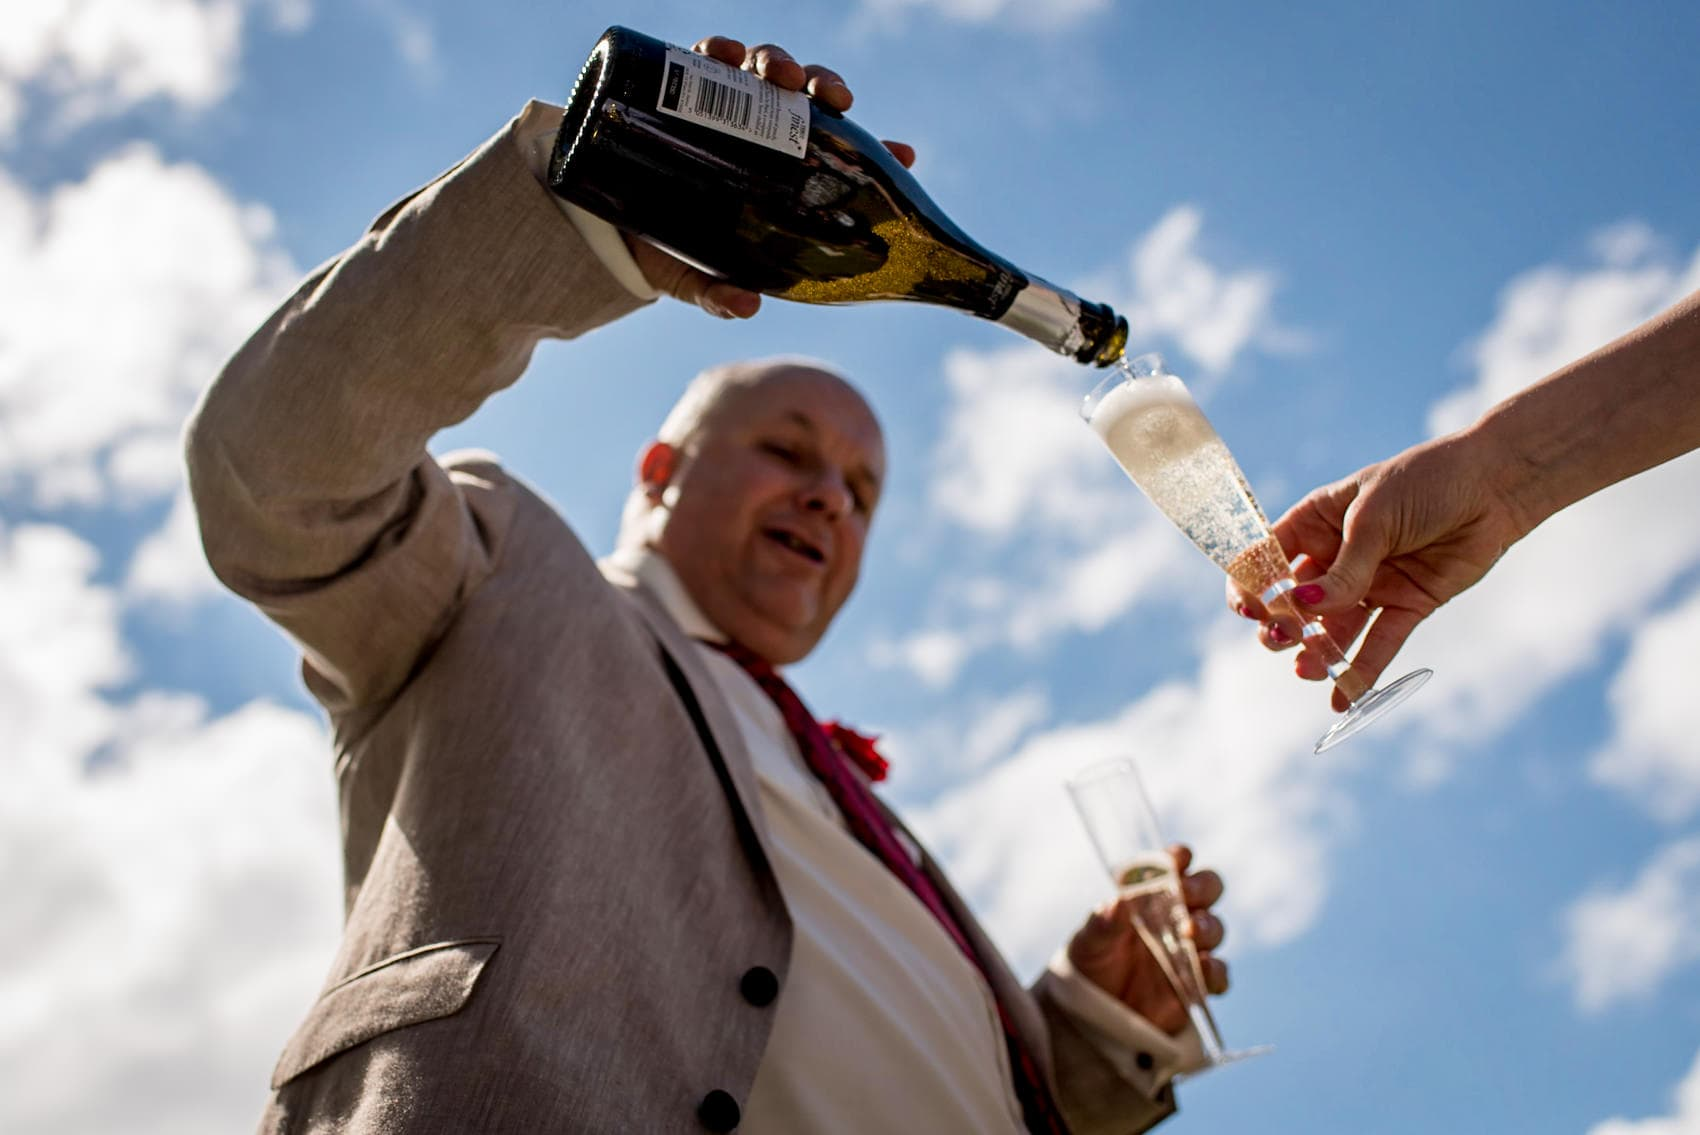 pouring champagne at the wedding reception with blue skies